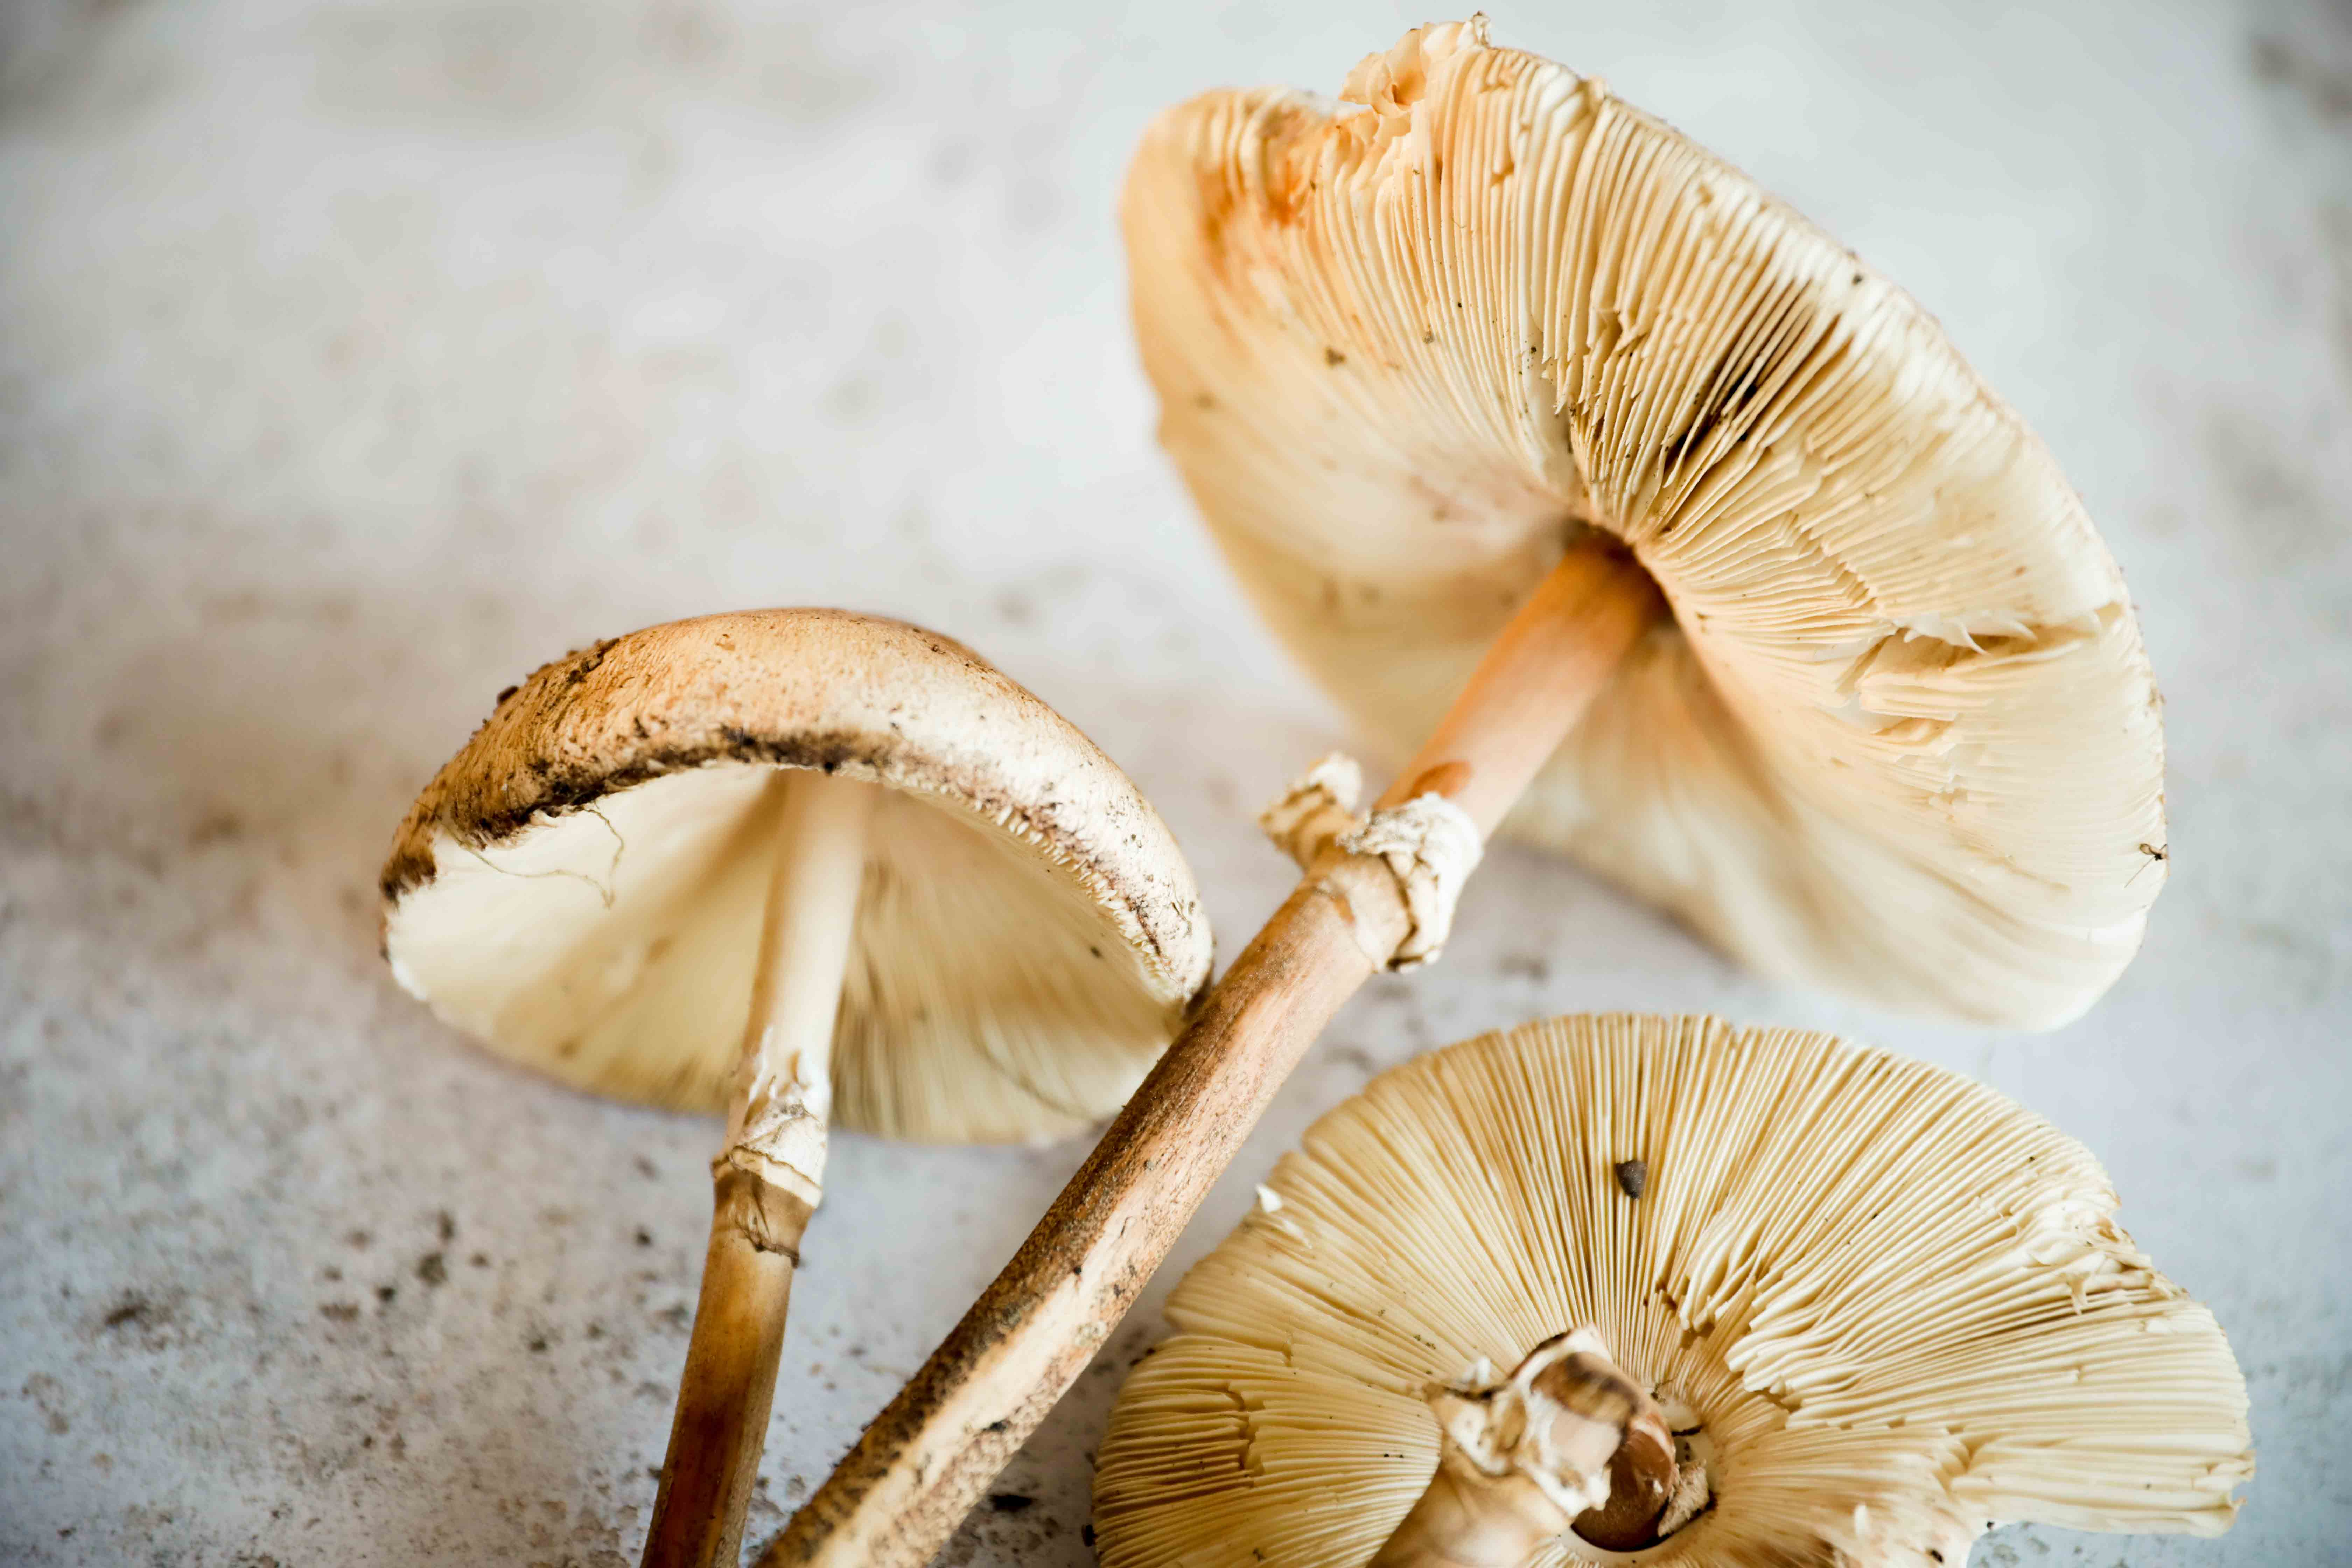 claudialeclercq-edible mushrooms-champignons comestibles_-9